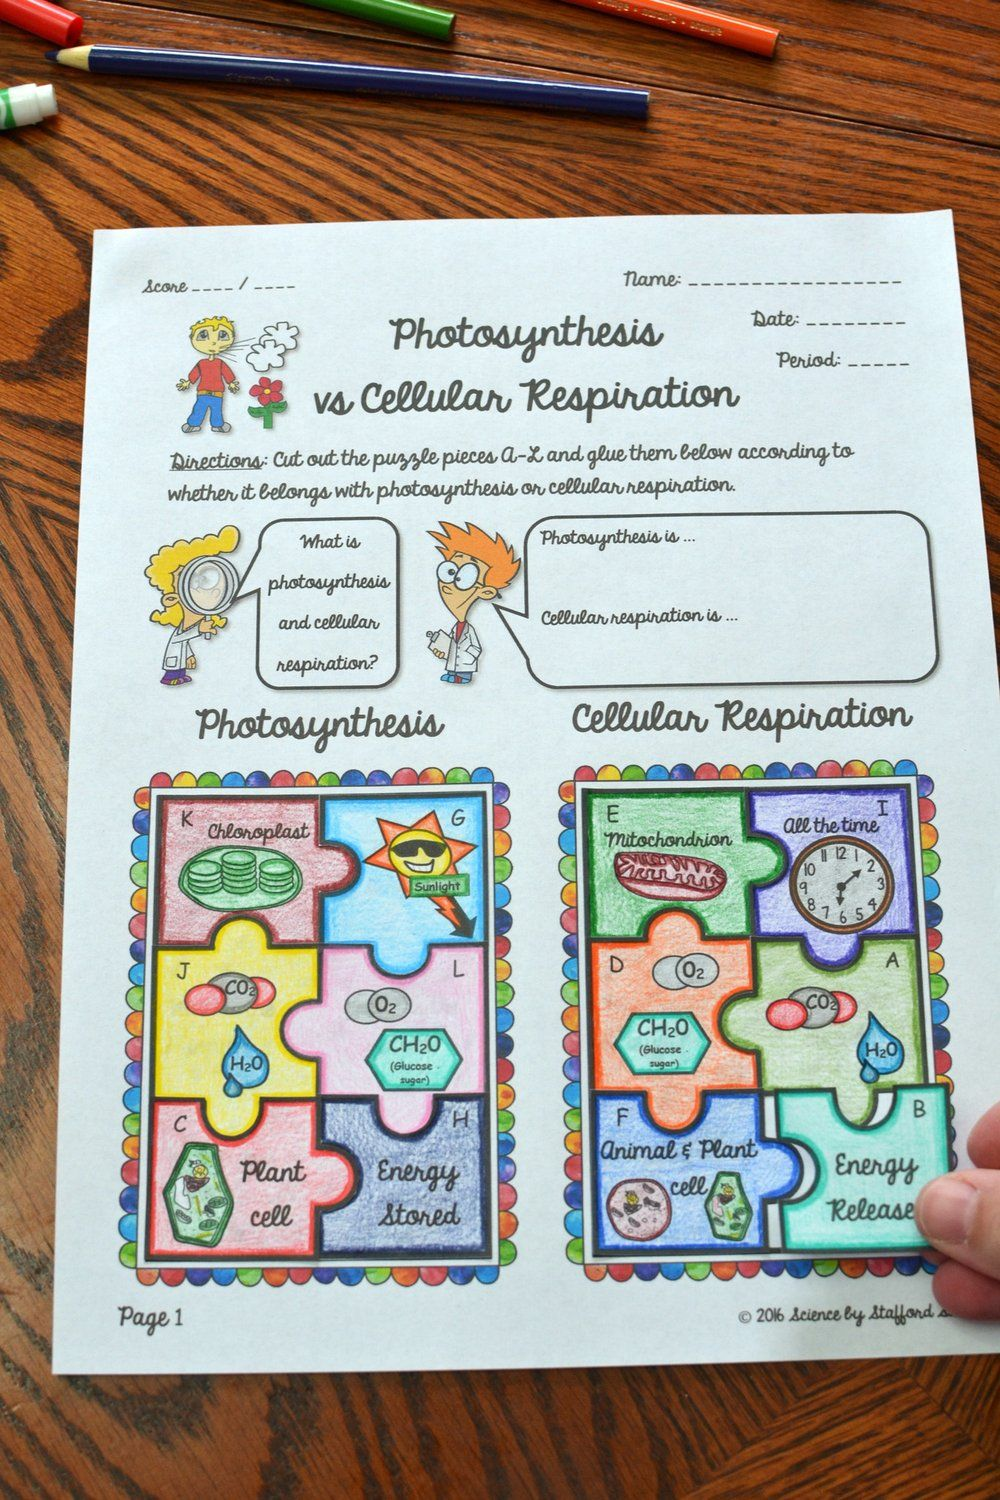 Photosynthesis vs Cellular Respiration Puzzle Activity in